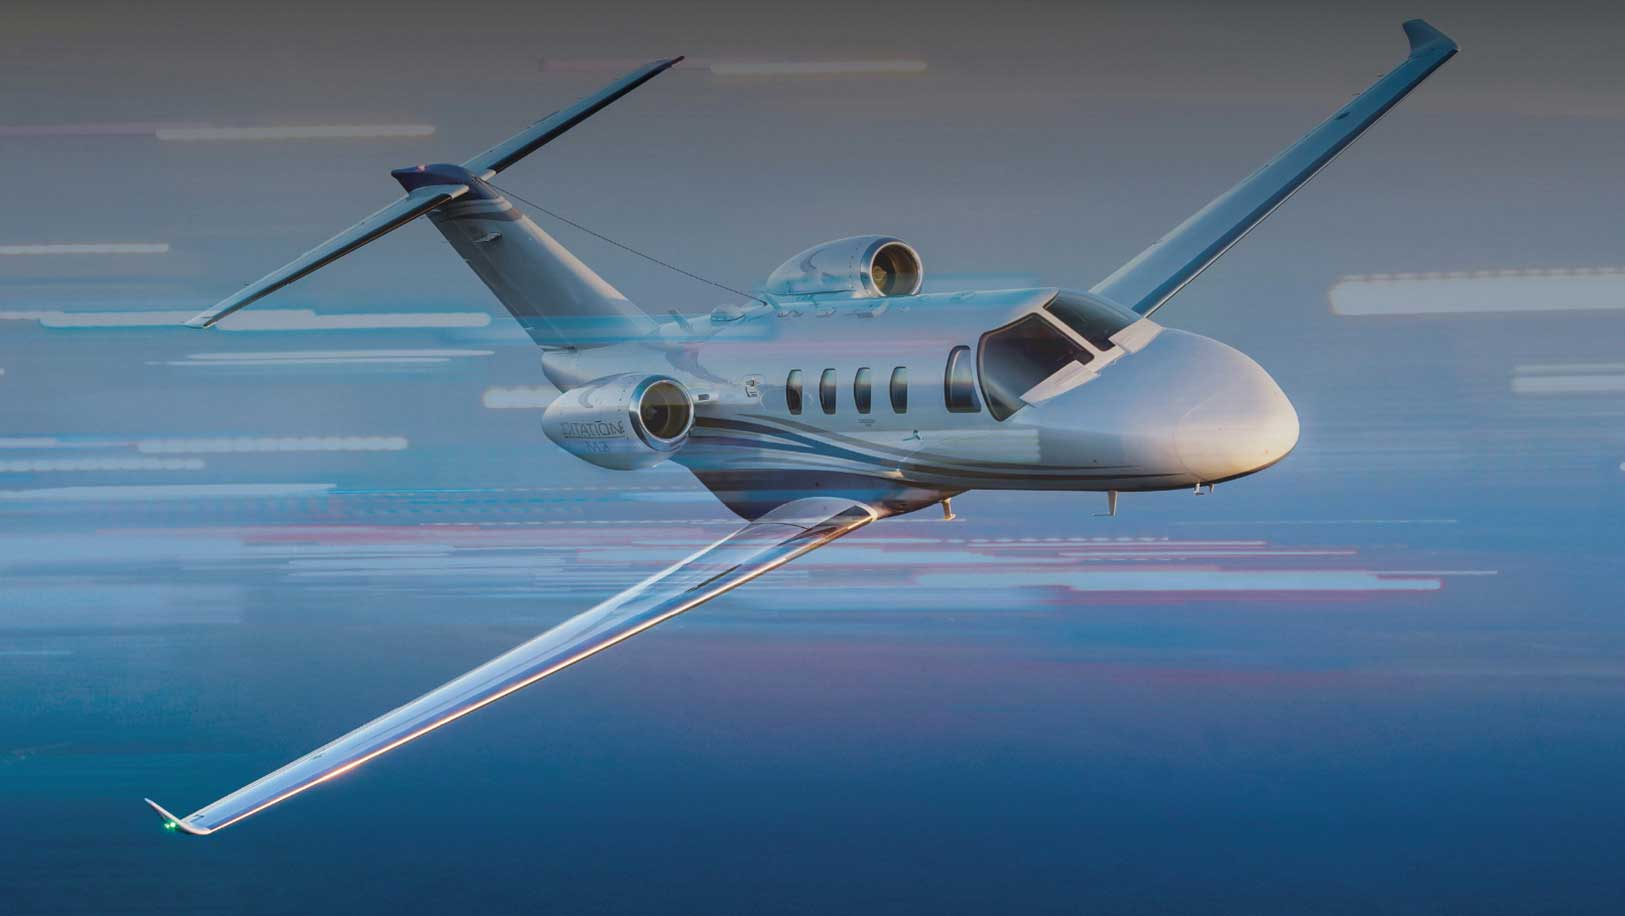 citation jet flying